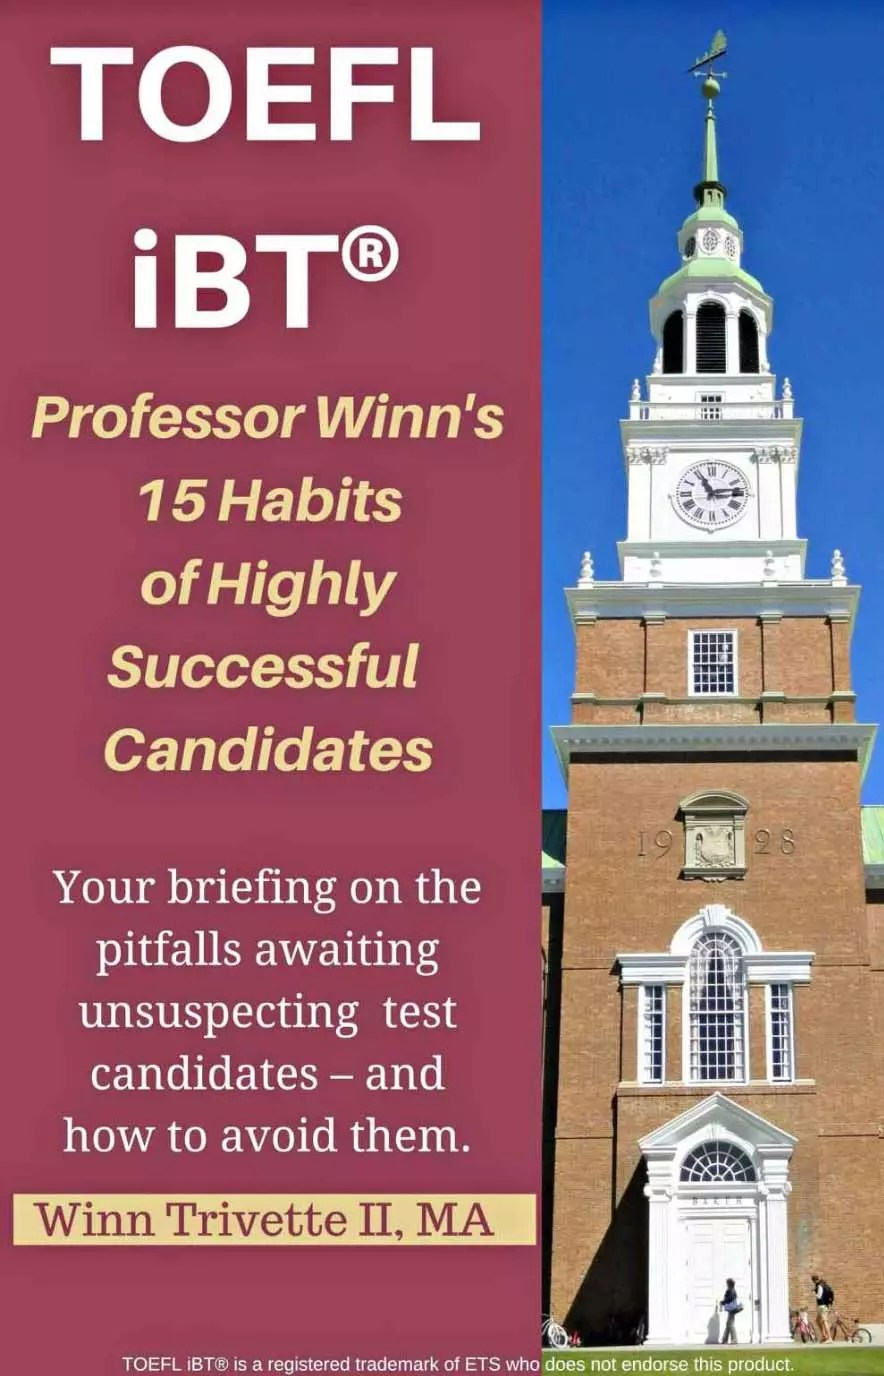 Professor Winn's 15 Habits of Highly Successful TOEFL iBT® Candidates